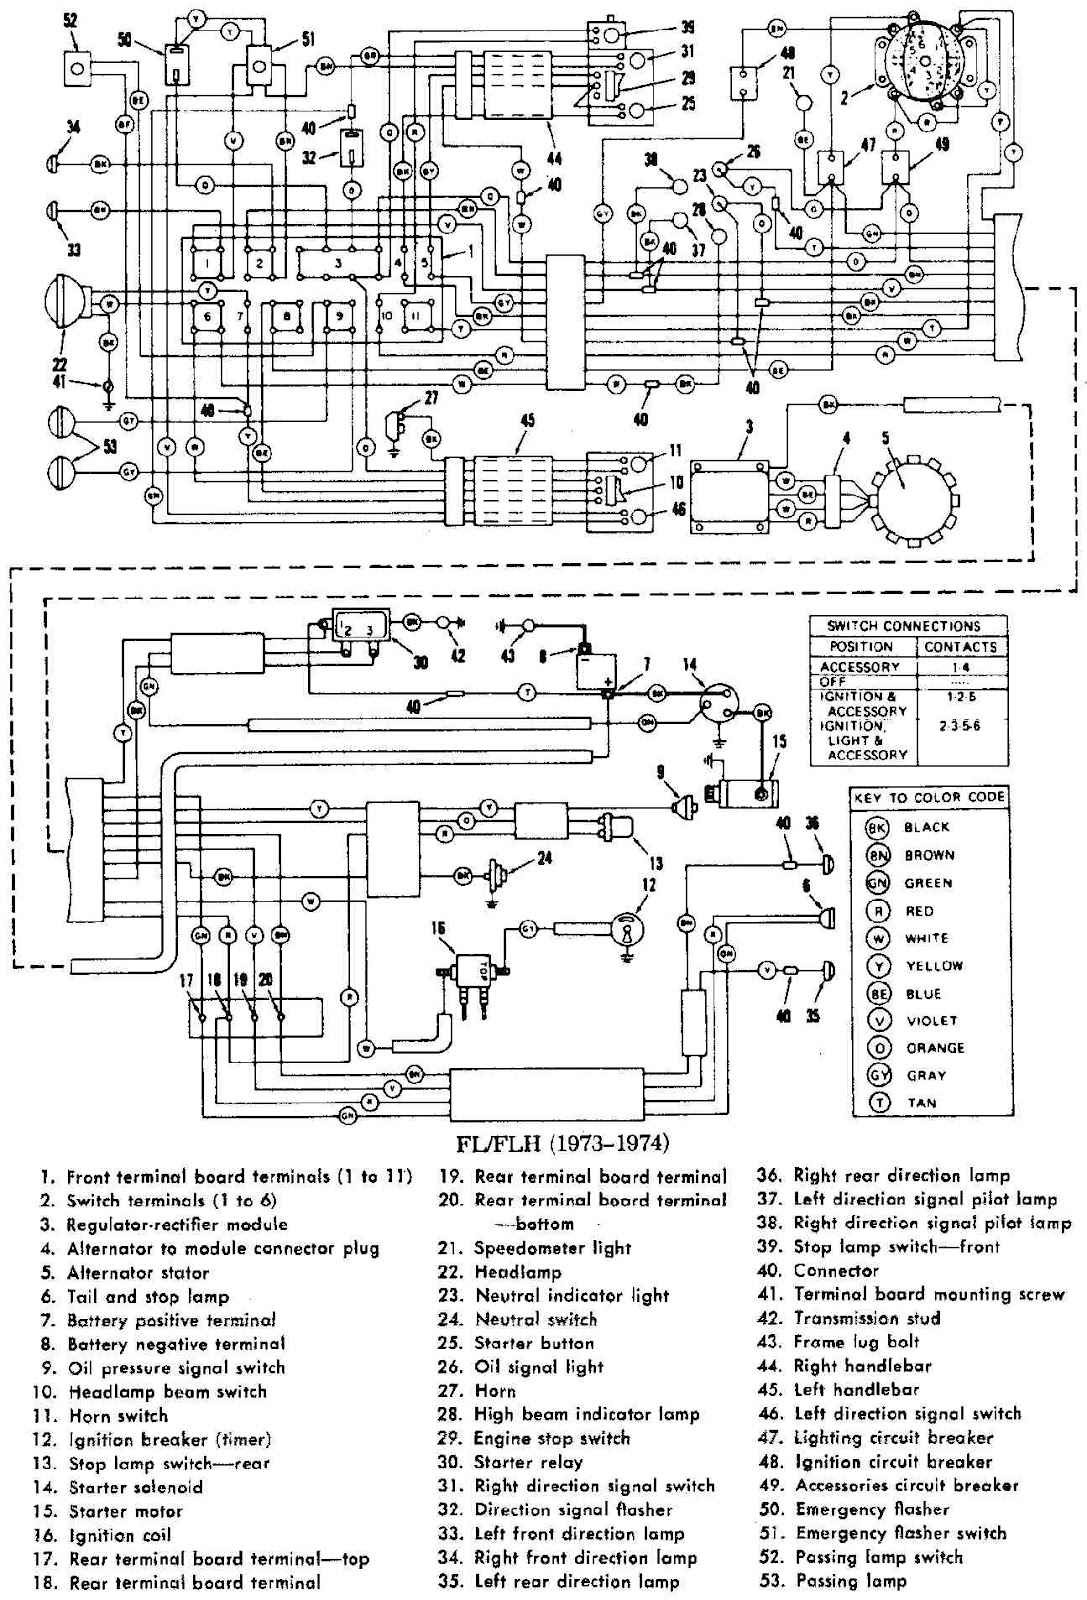 wiring diagram for a harley davidson 6 pole ignition Harley-Davidson Fuse Box Location 2002 Harley Sportster Fuse Box Location